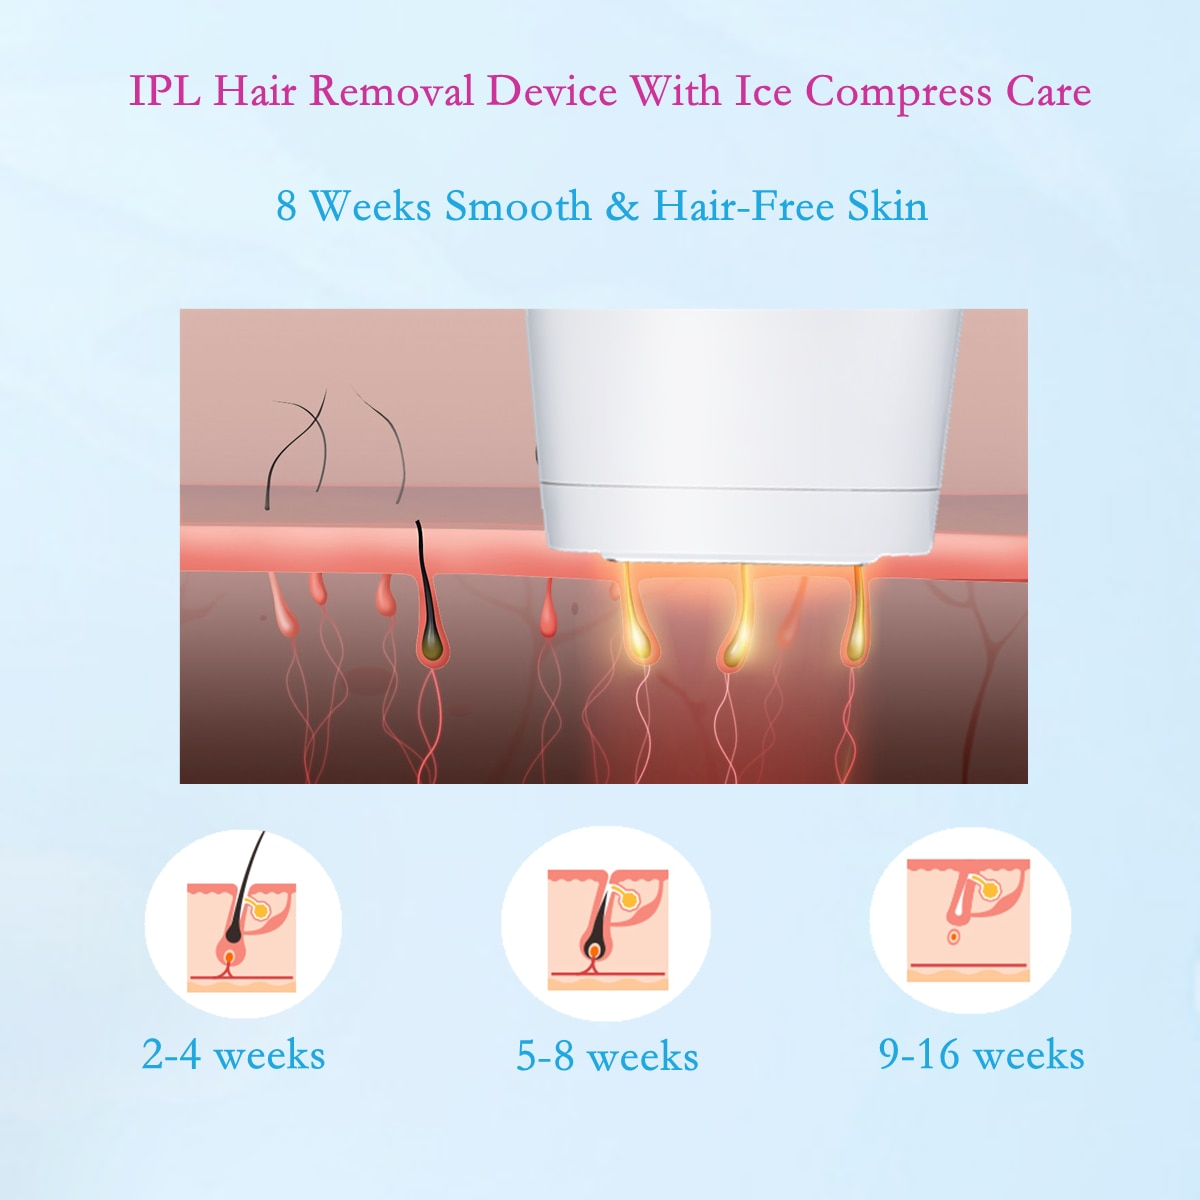 TUMAKOU IPL Hair Removal Epilator Laser Permanent Hair Removal Machine Face Body Electric Depilador Device 500000 Flashes enlarge